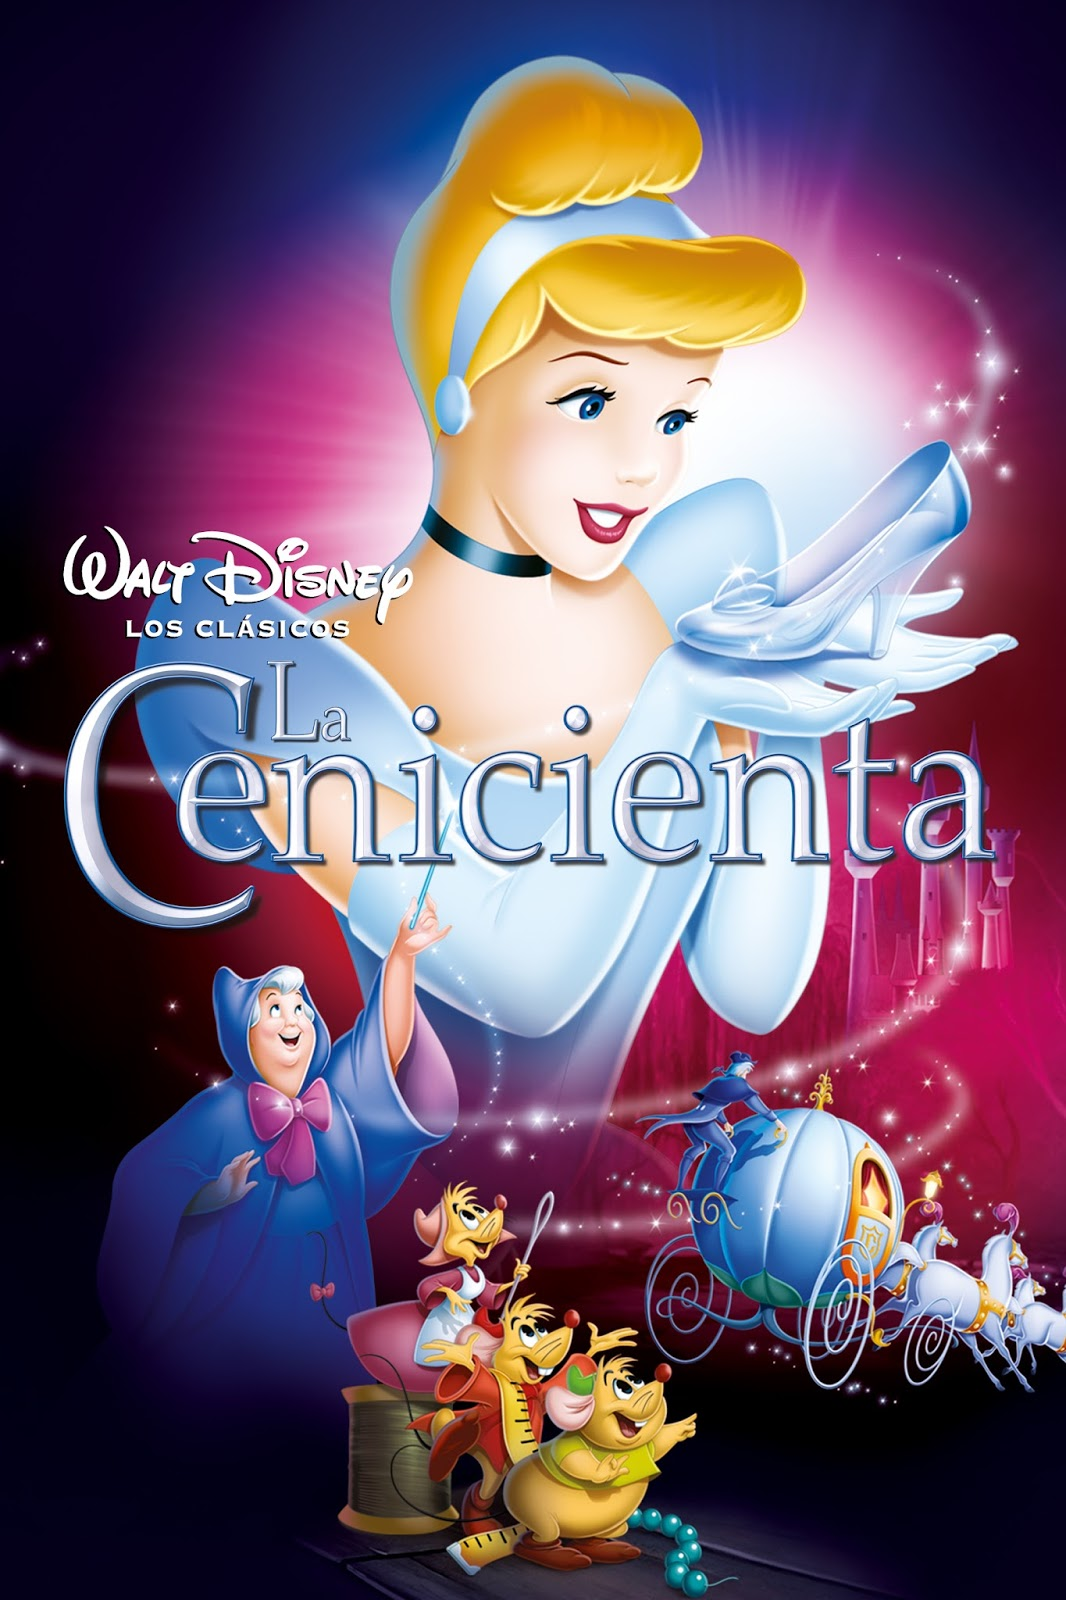 cinderella-1950-spain-us-apple_d4ce57e0.jpg